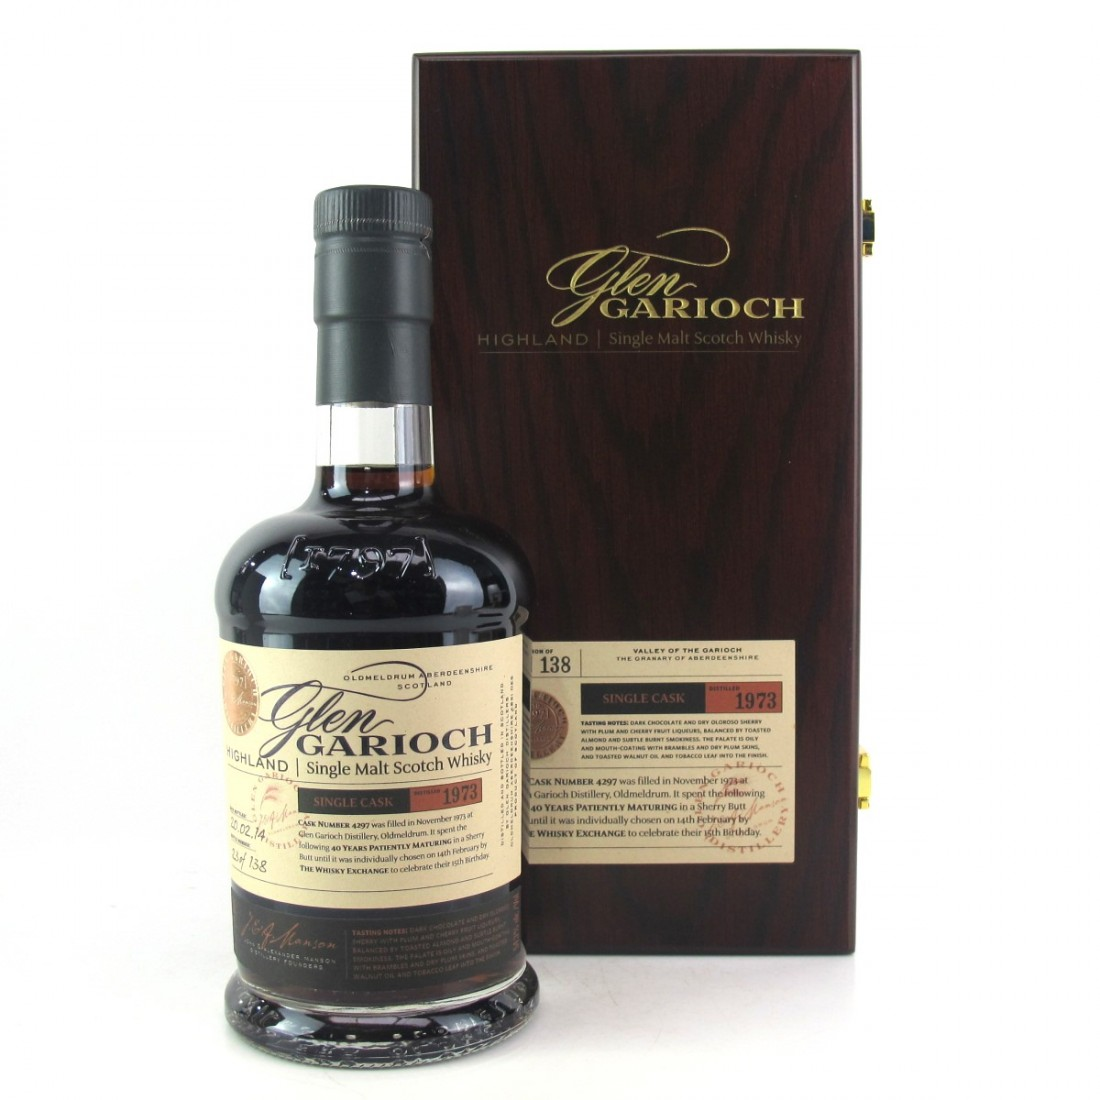 Glen Garioch 1973 Single Cask 40 Year Old #4297 / TWE